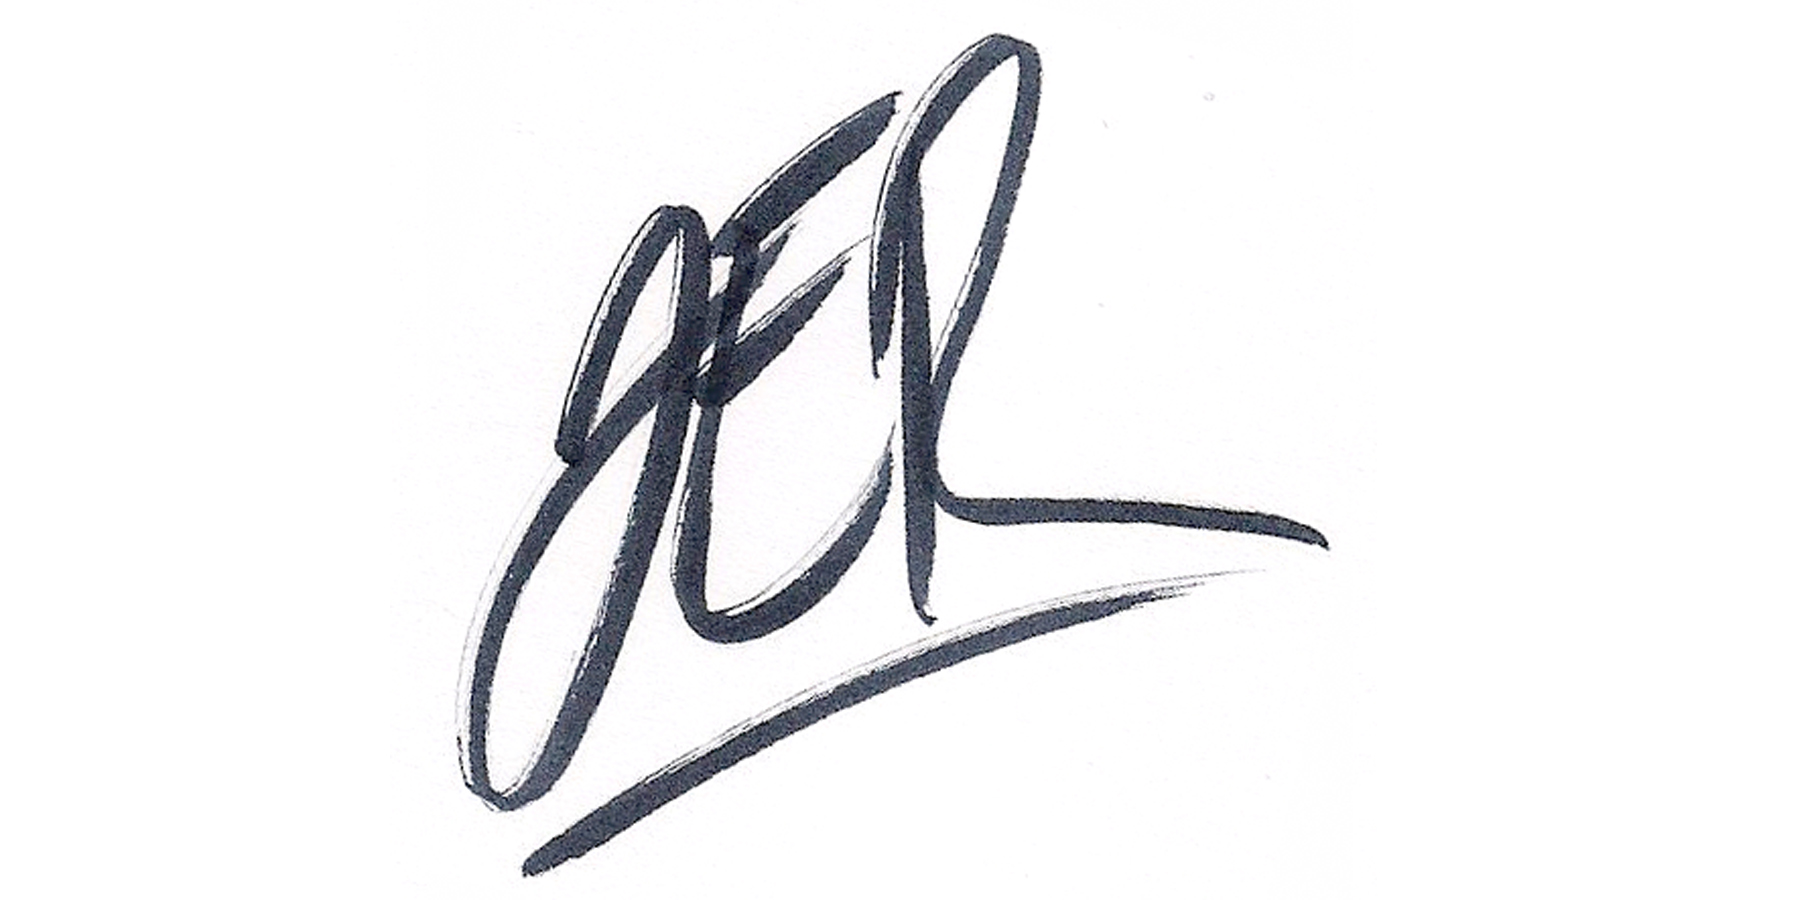 Jeremy Richer's Signature